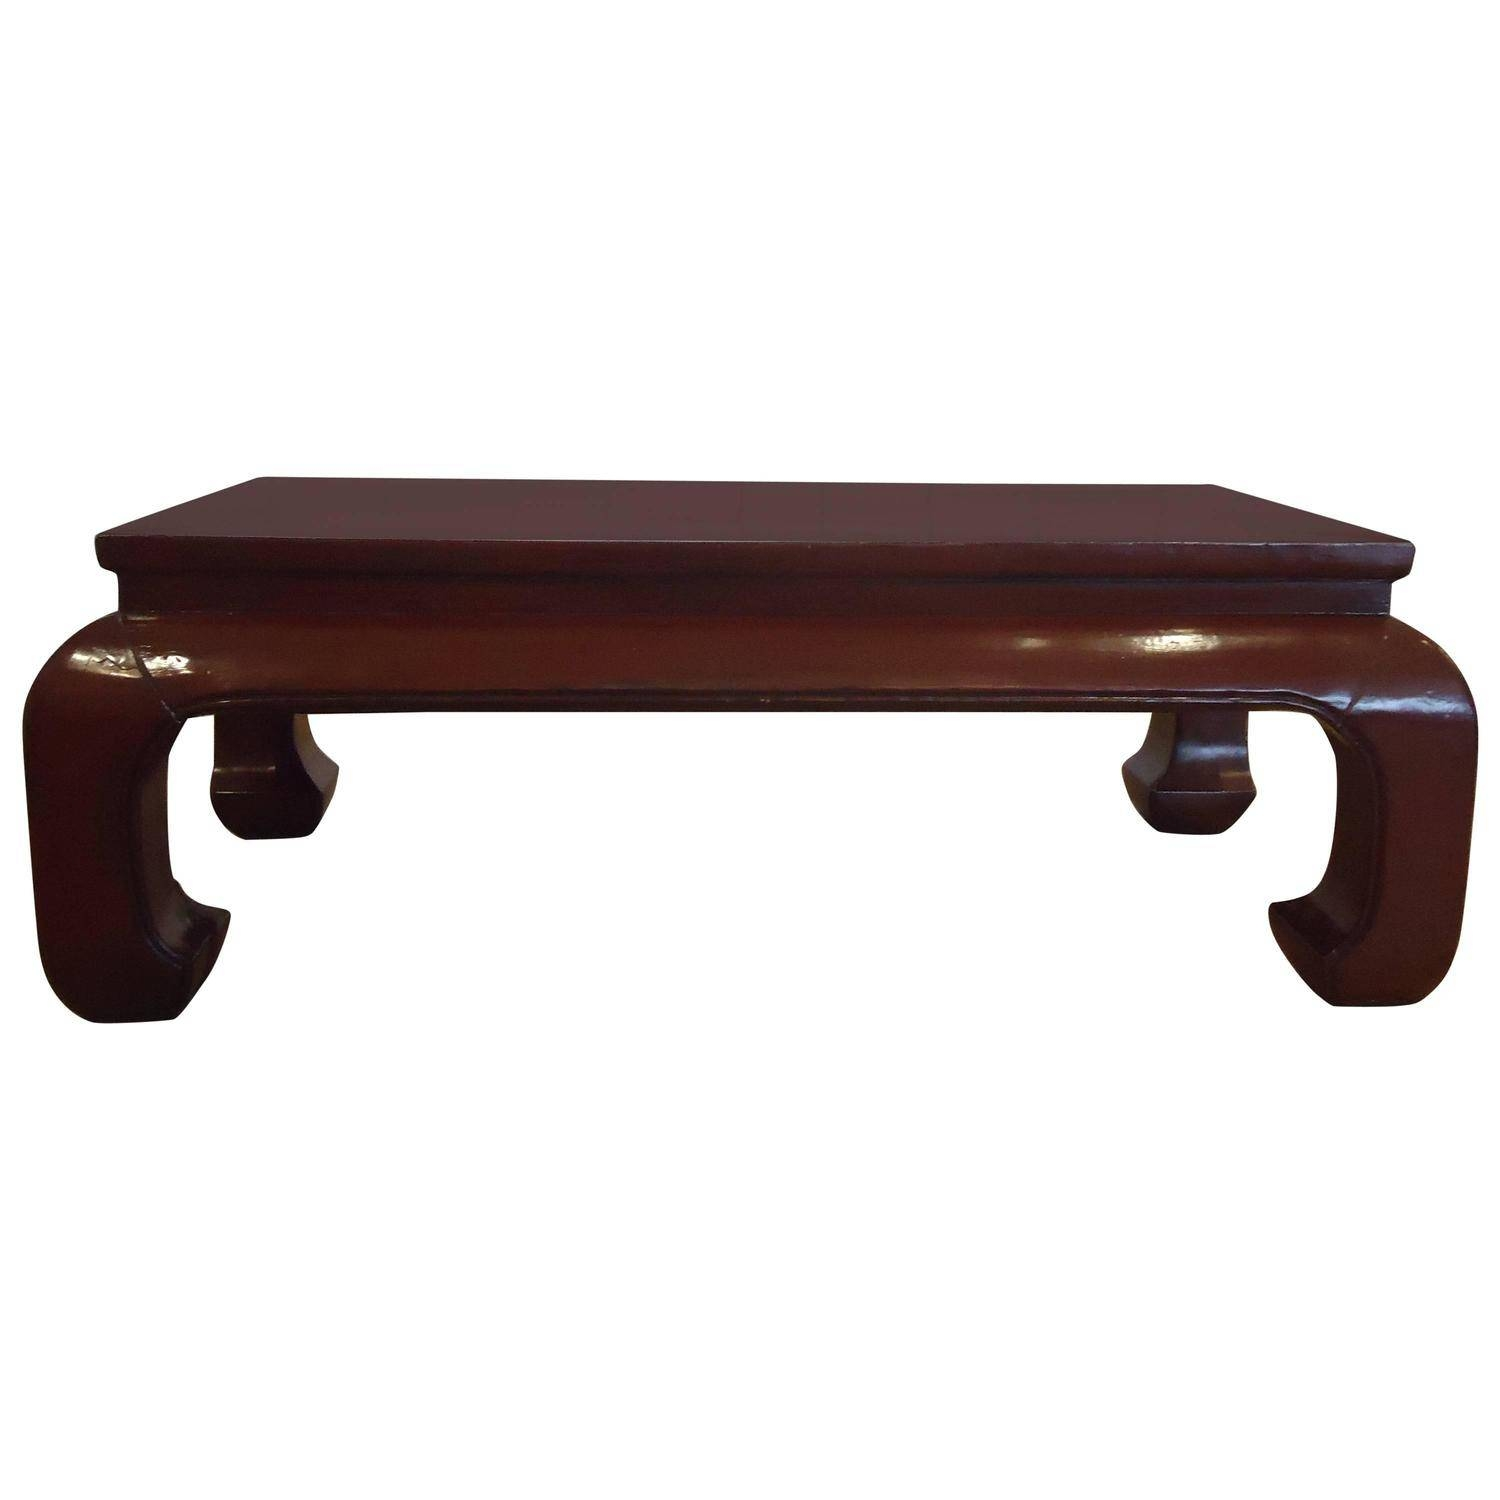 Stunning Dark Red Lacquer Chinese Coffee Table At 1Stdibs within Chinese Coffee Tables (Image 27 of 30)